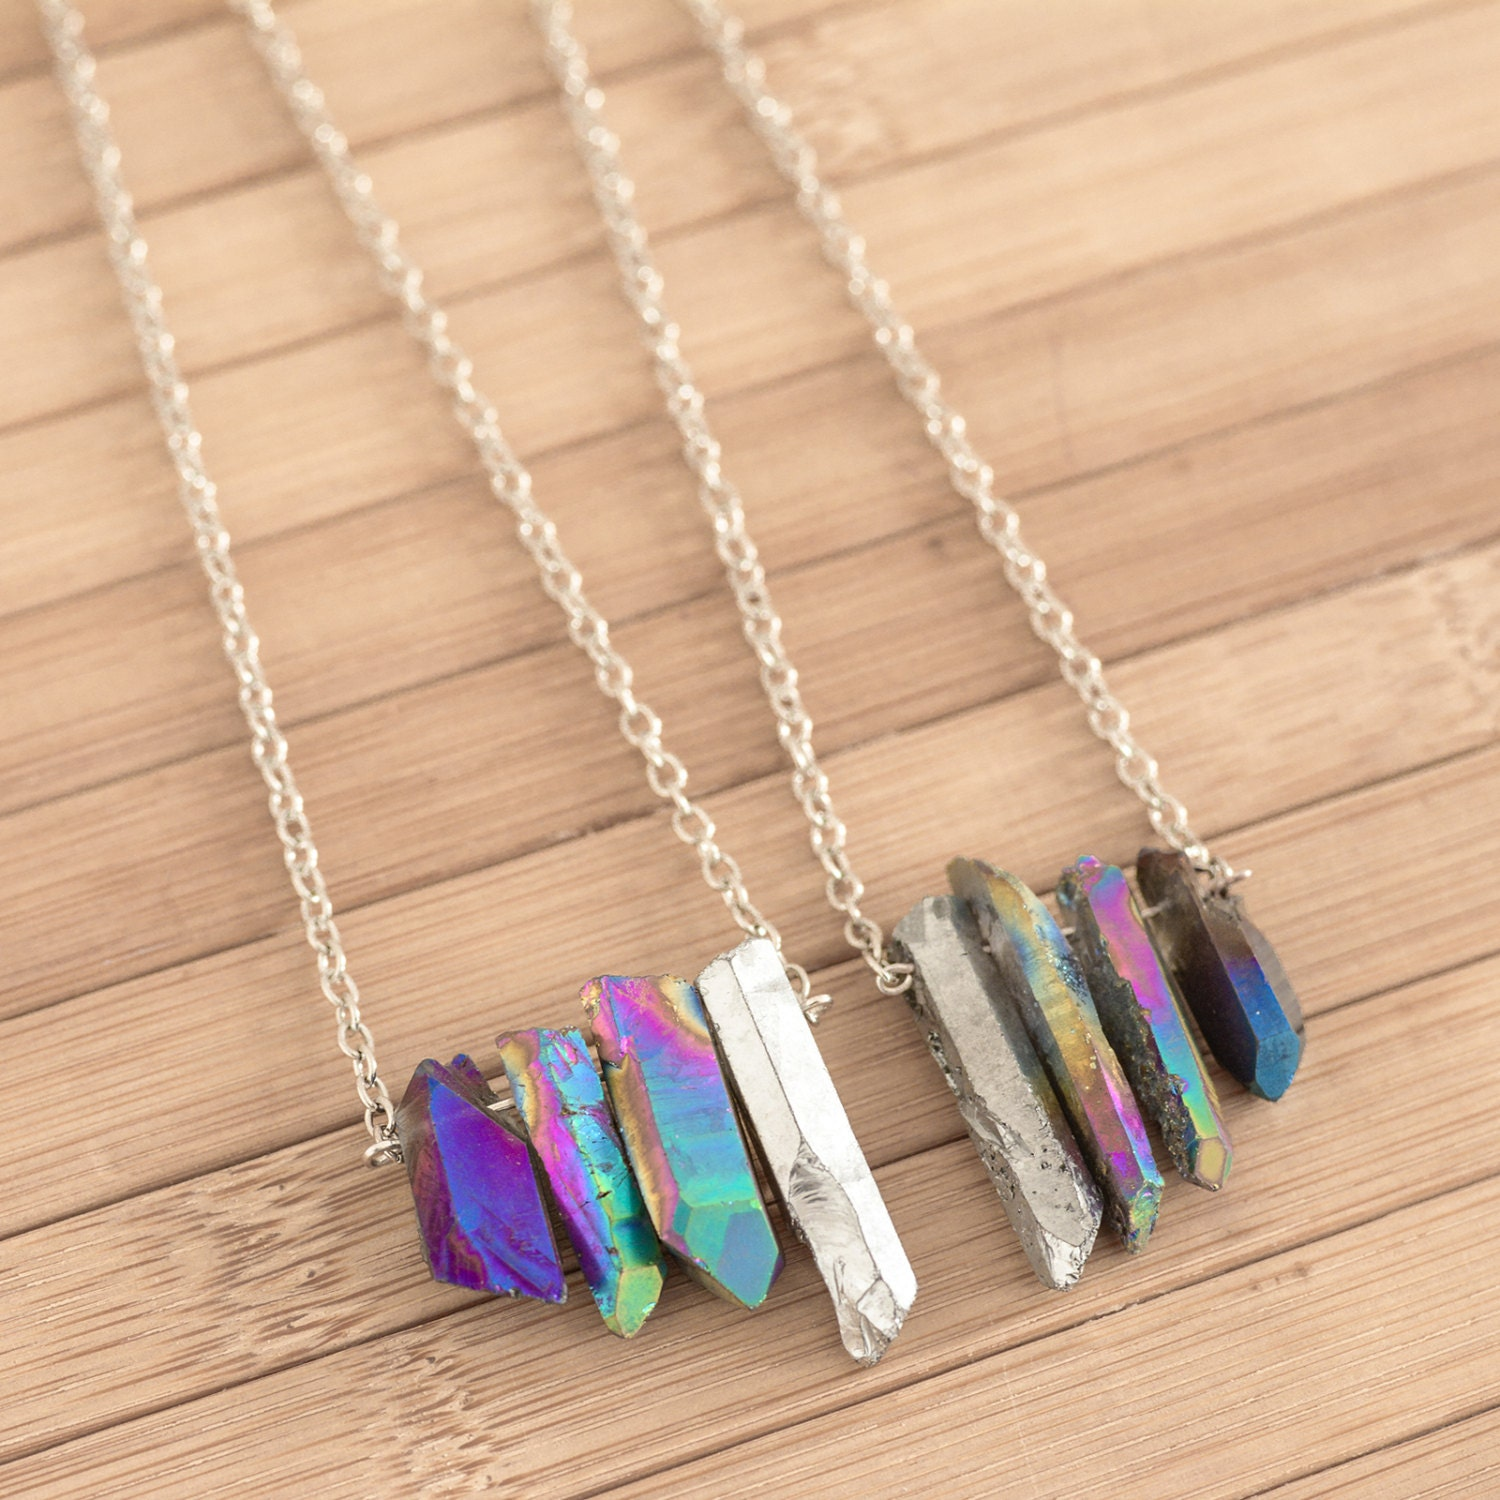 Rainbow Blue Cluster Healing Crystal Necklace Quartz Silver Chain Vintage Boho Galaxy Natural Titanium Quartz Jewellery Bohemian Stone